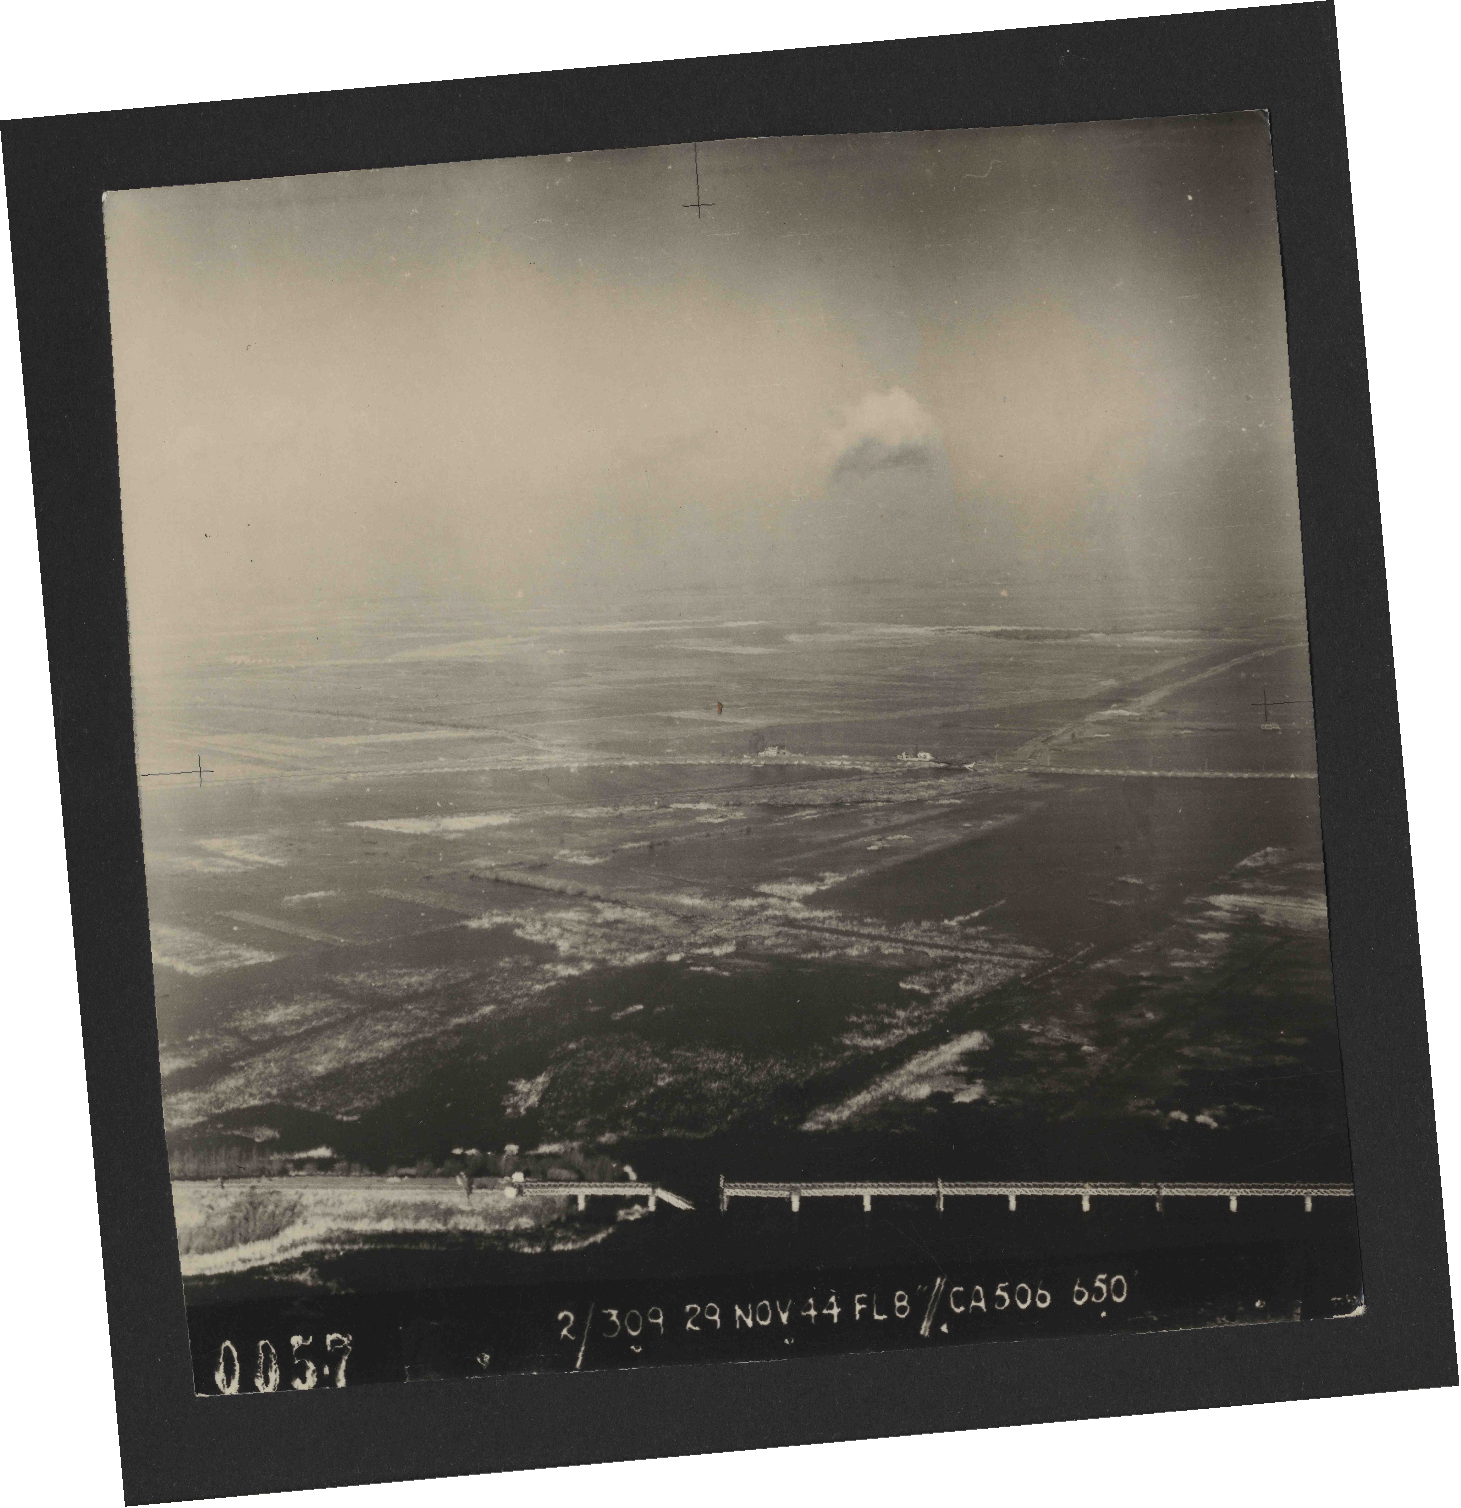 Collection RAF aerial photos 1940-1945 - flight 533, run 01, photo 0057